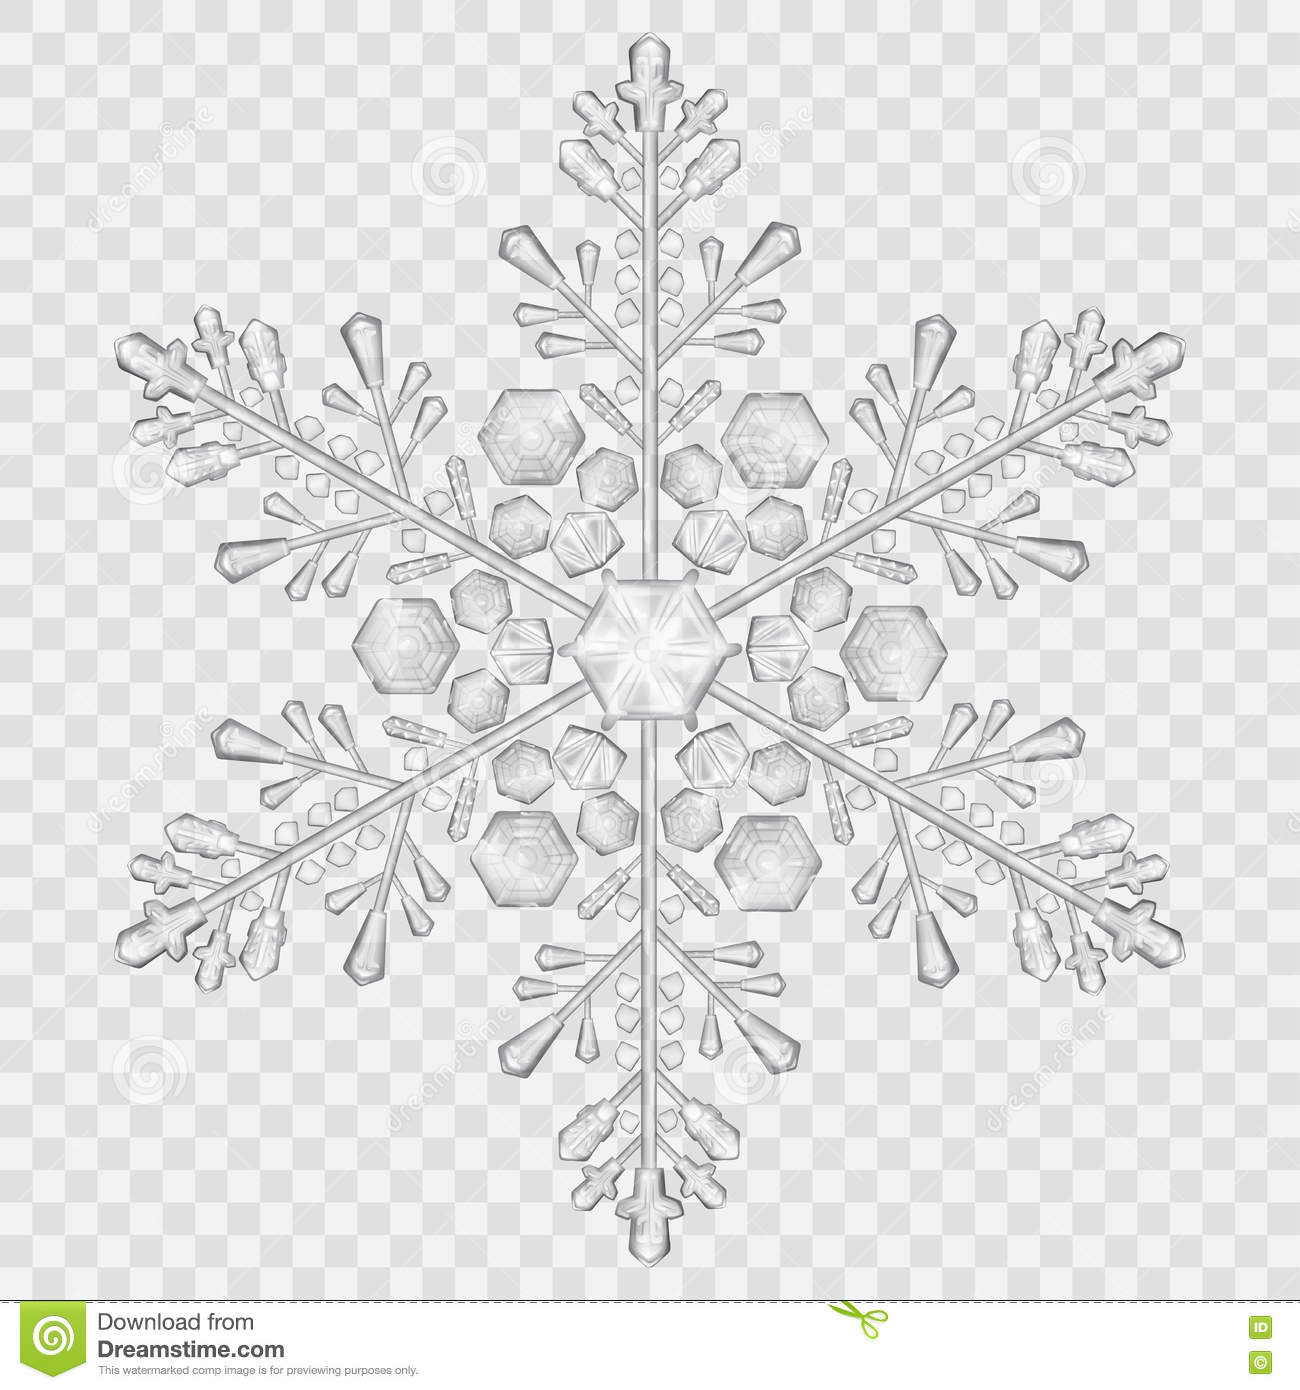 Big Translucent Crystal Snowflake Stock Vector